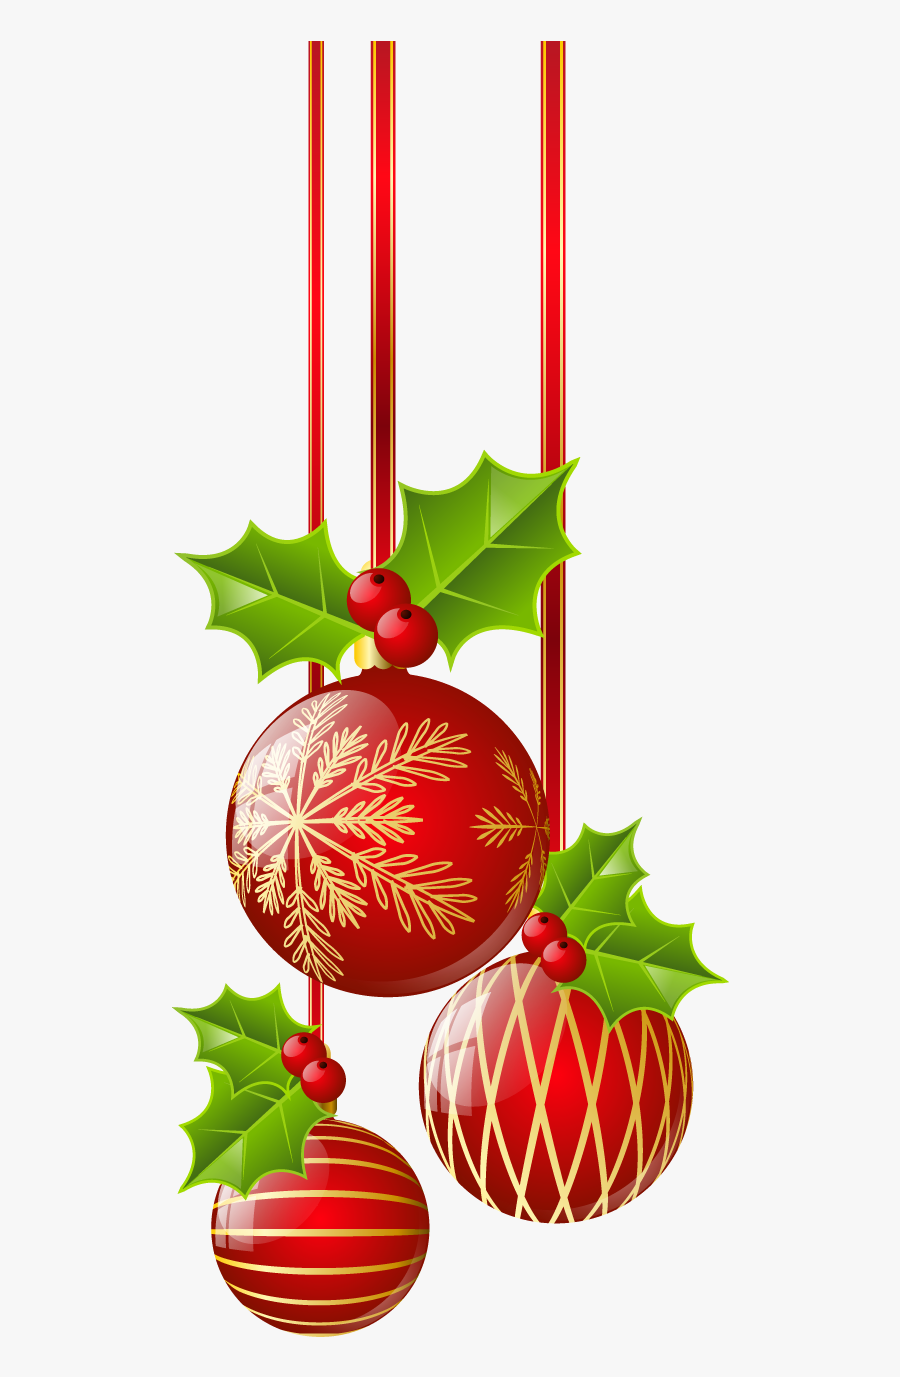 Ornaments Christmas Border Red Christmas Red Ornaments Free Transparent Christmas Clipa Christmas Clipart Merry Christmas Images Christmas Tree Template